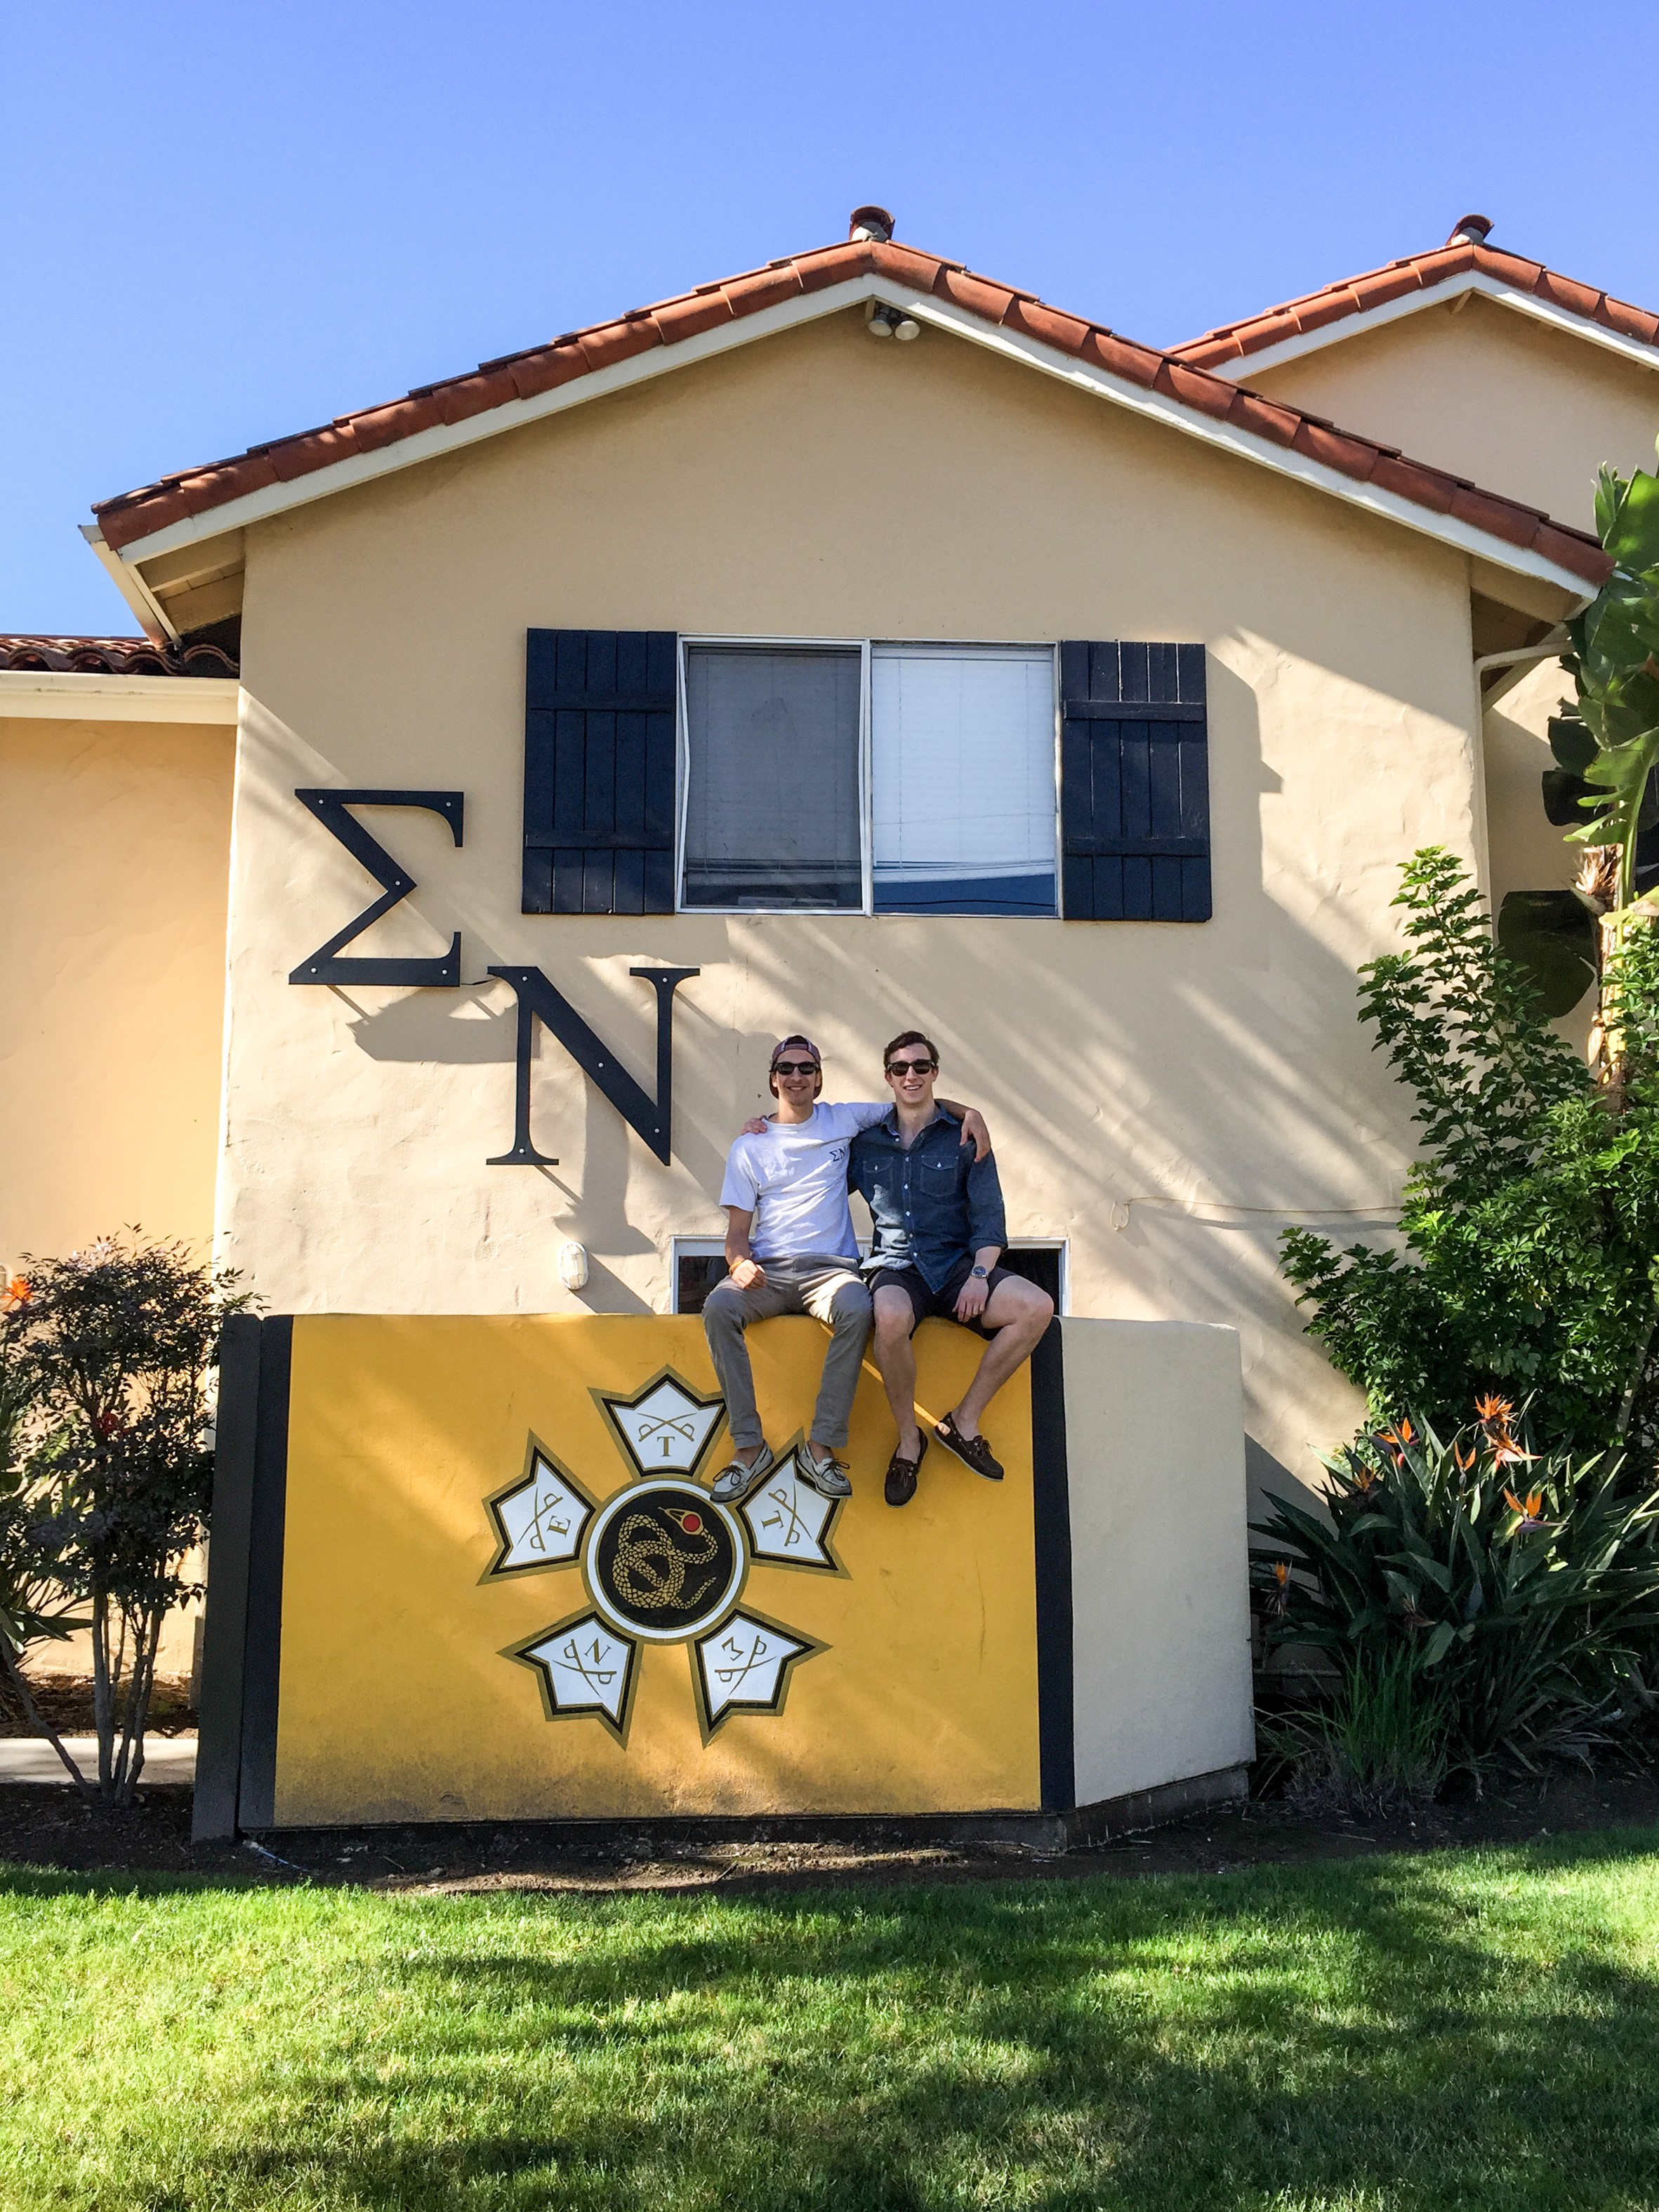 James and Adrian at UCSB House